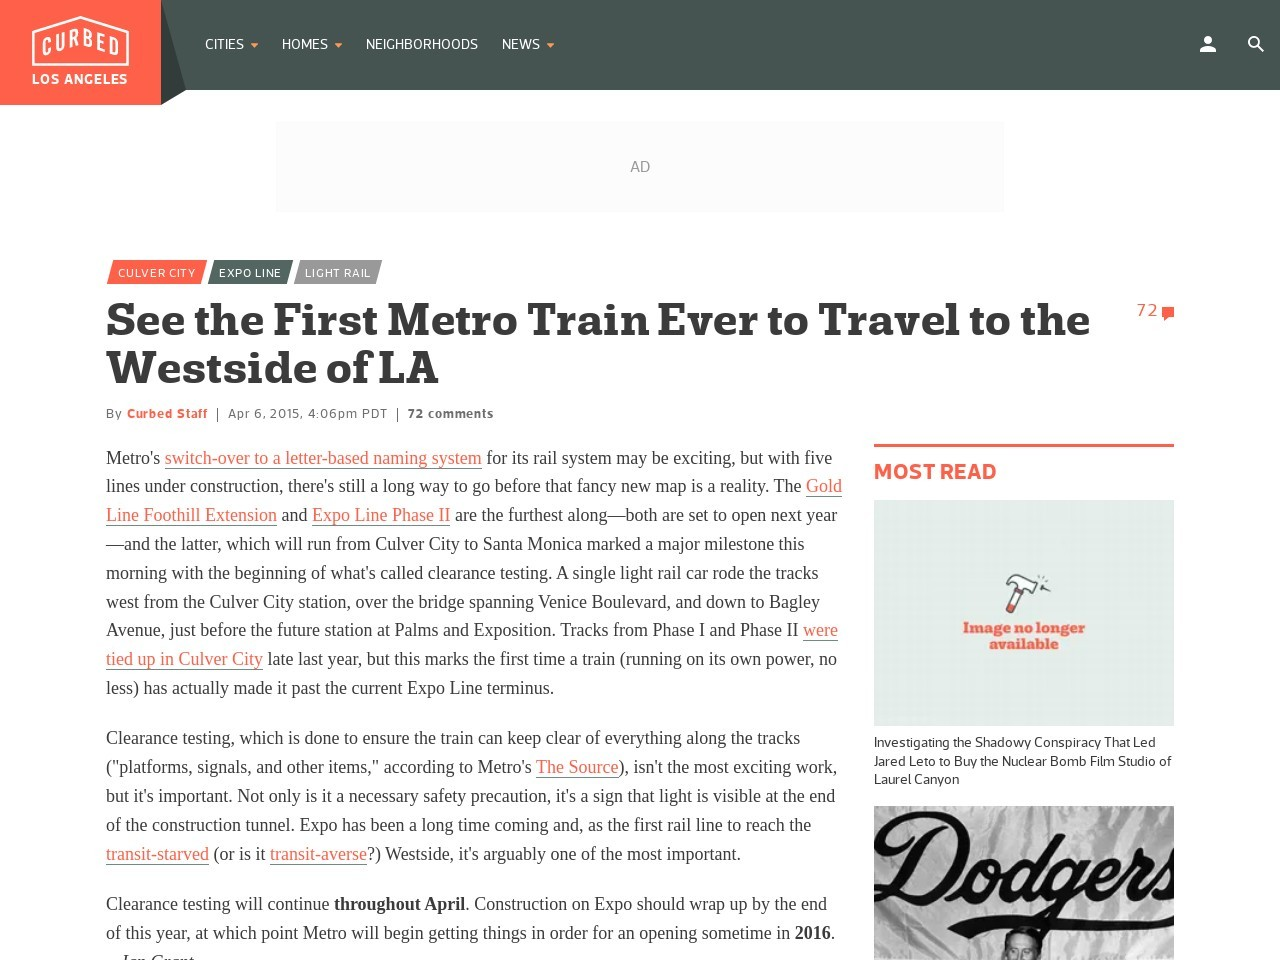 See the First Metro Train Ever to Travel to the Westside of LA